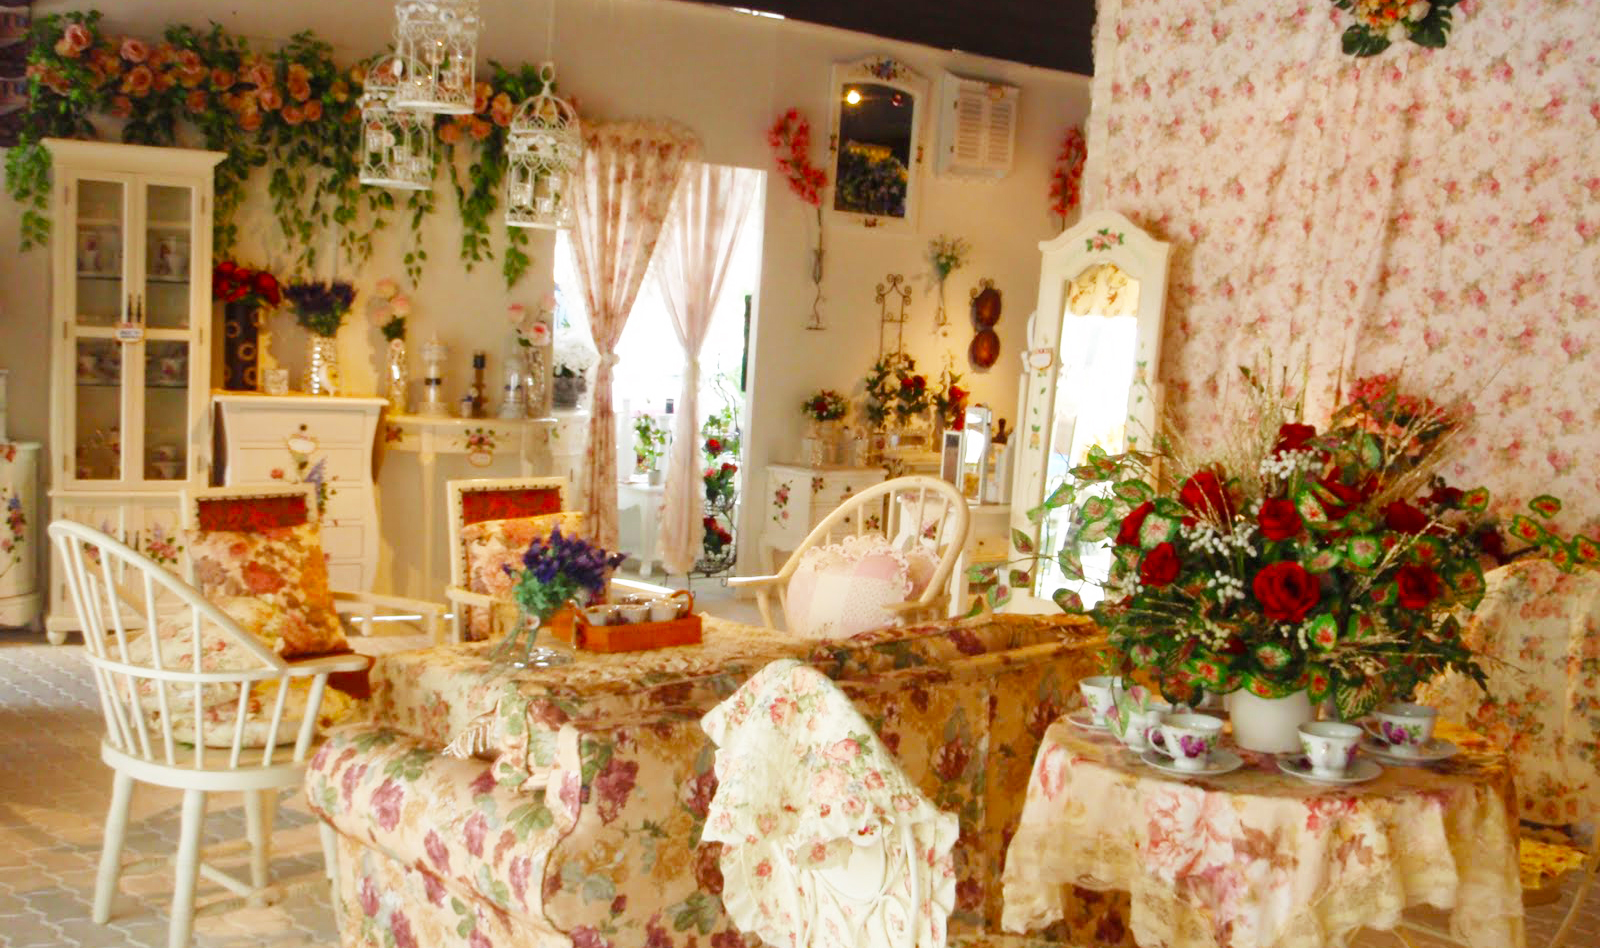 Country style home decor ideas with pictures roy home design for Country style home decorations